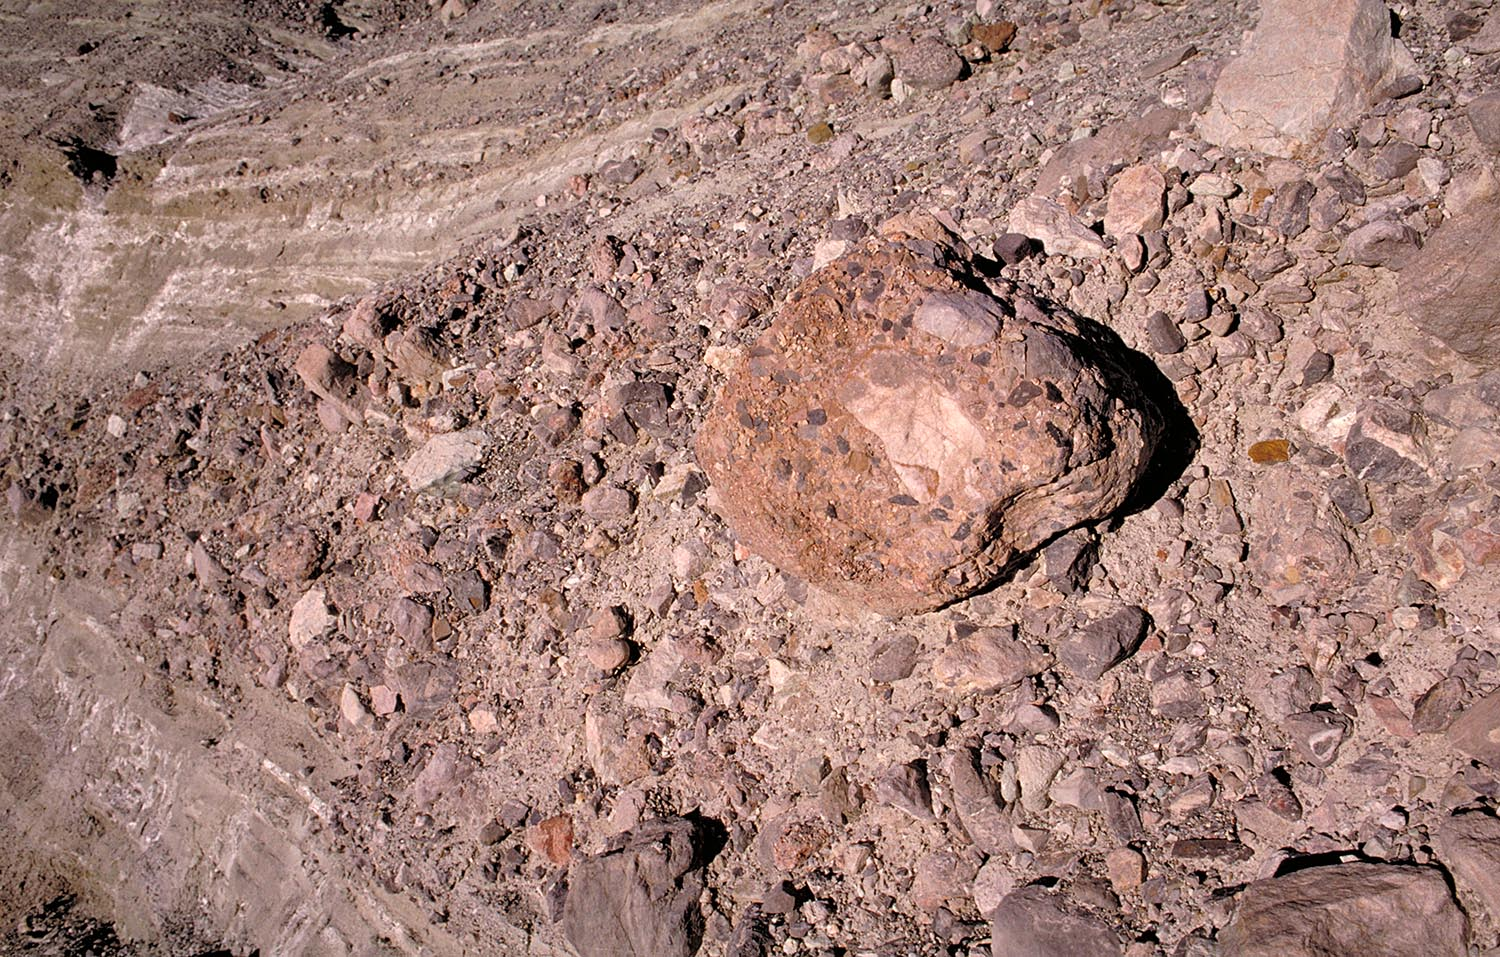 Conglomerate clast in conglomerate